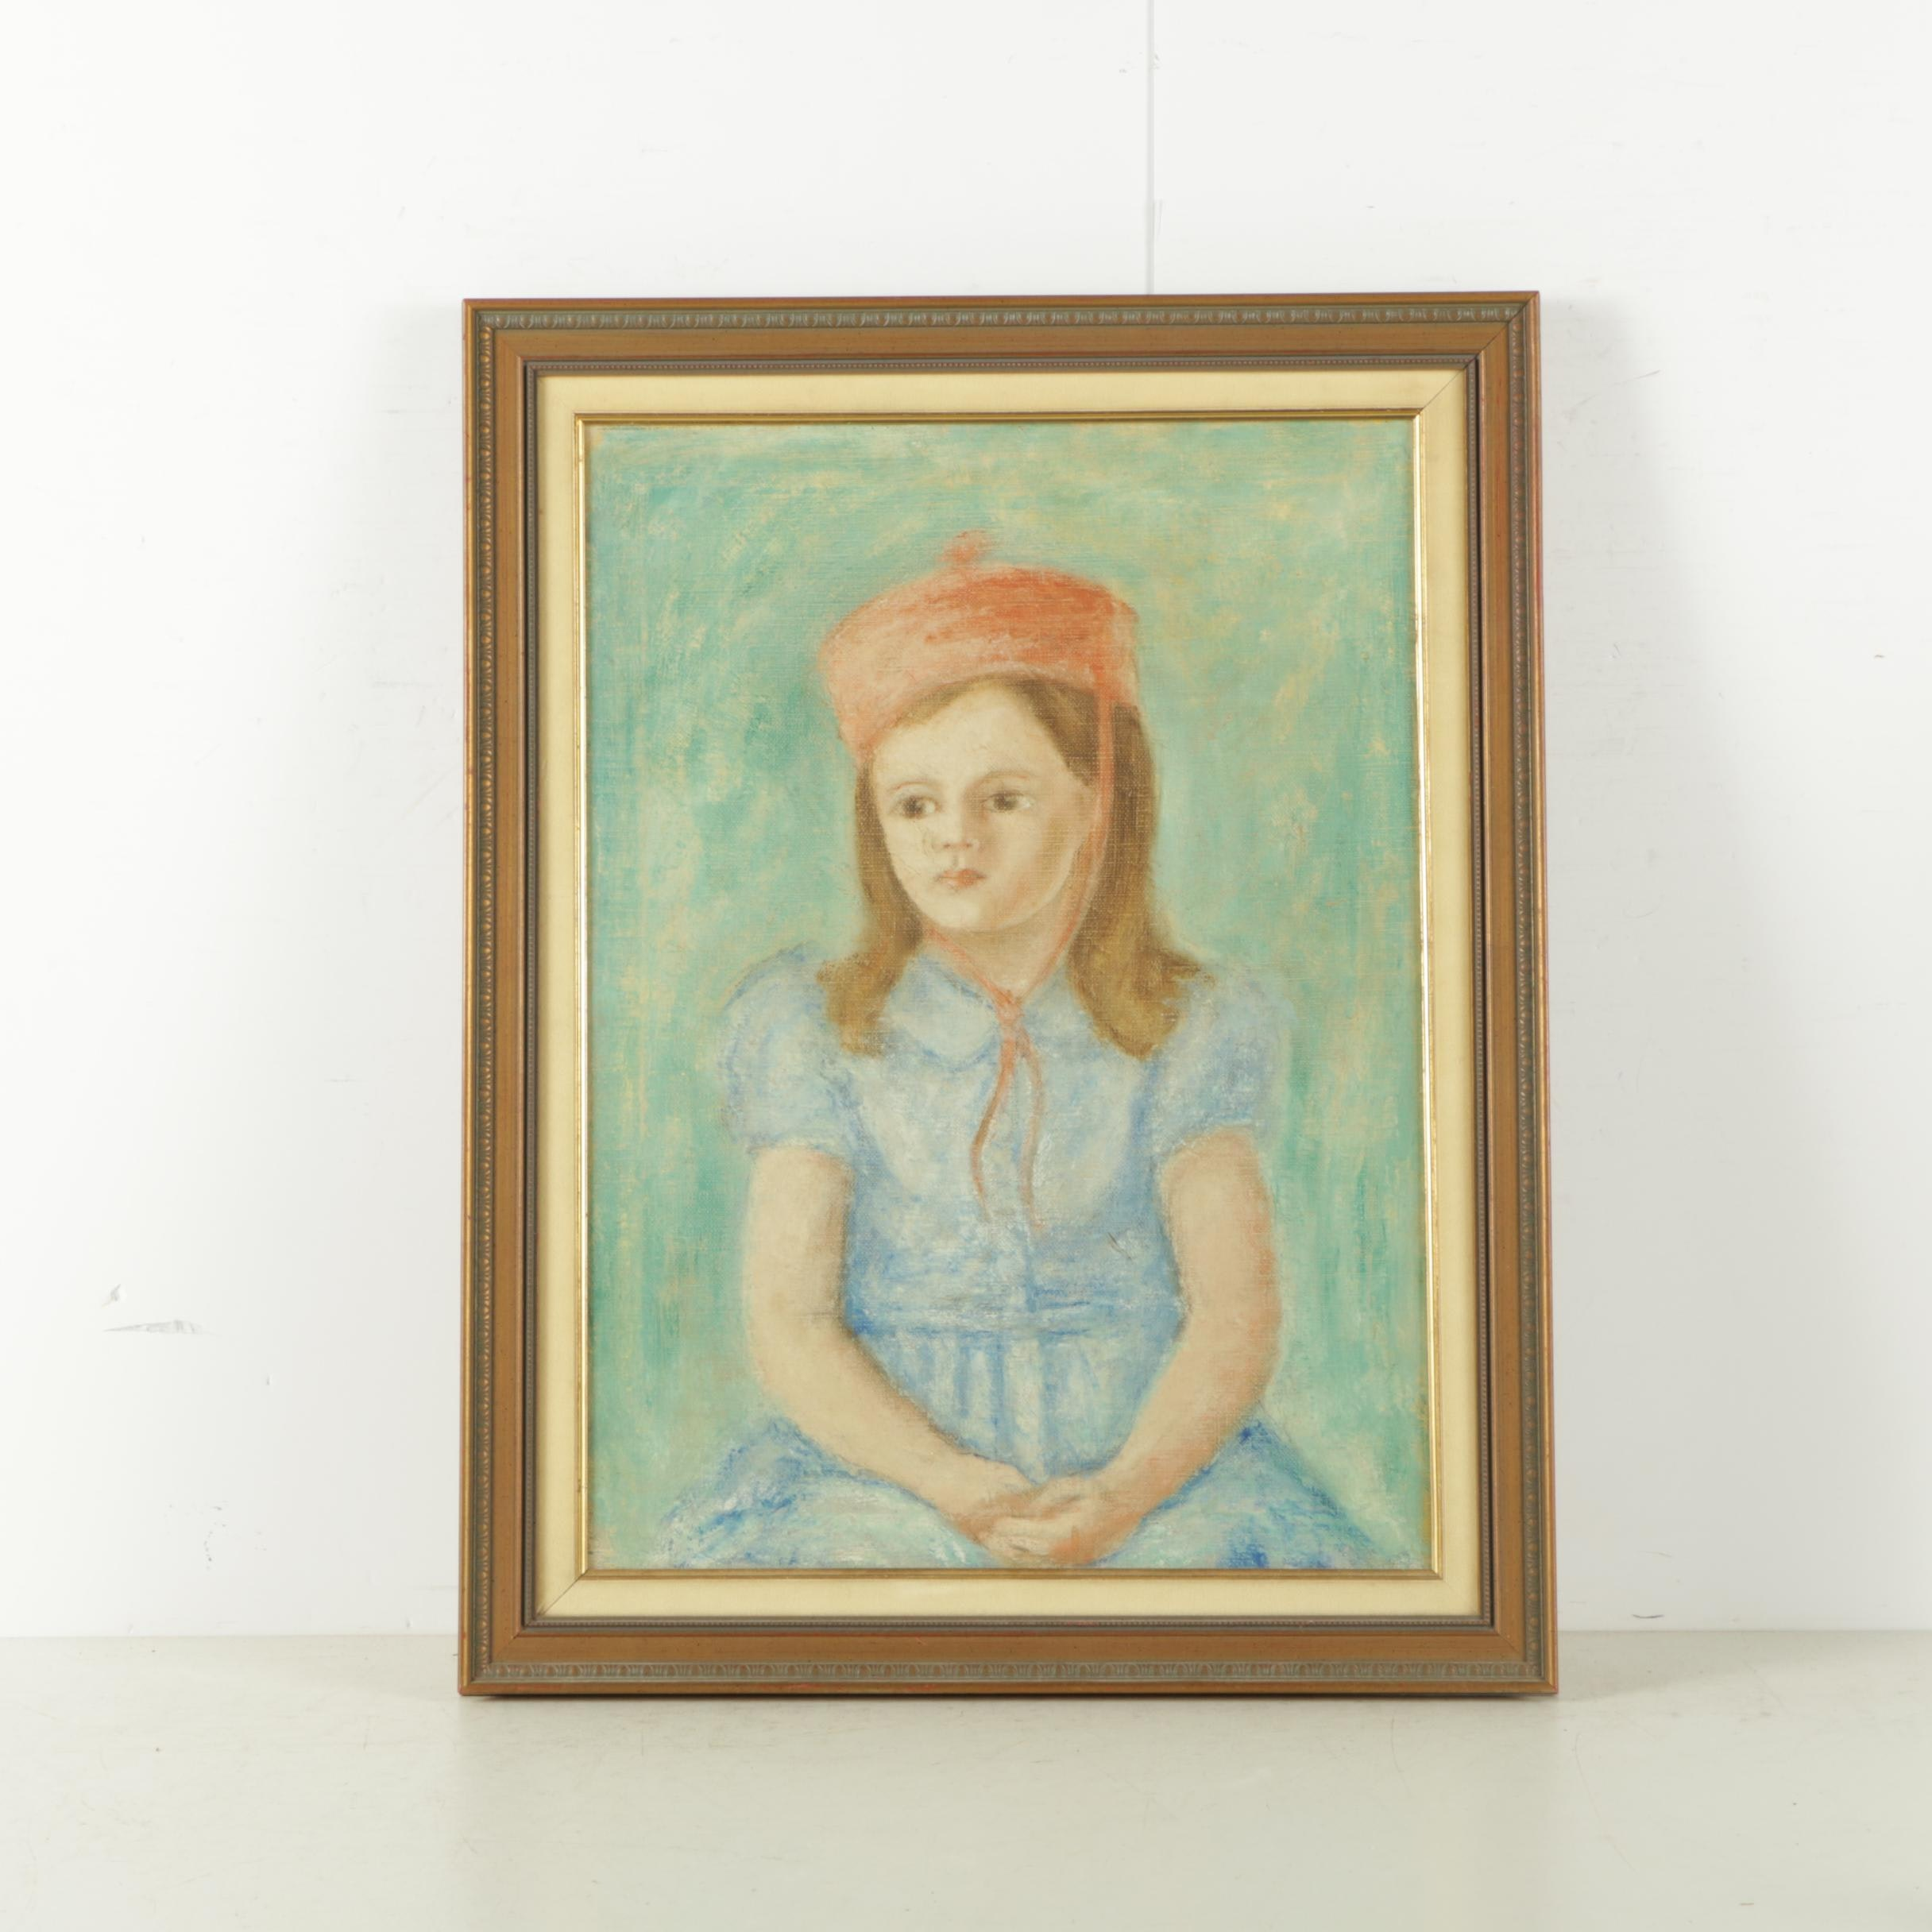 Oil Painting on Canvas of Girl in Blue Dress and Red Hat